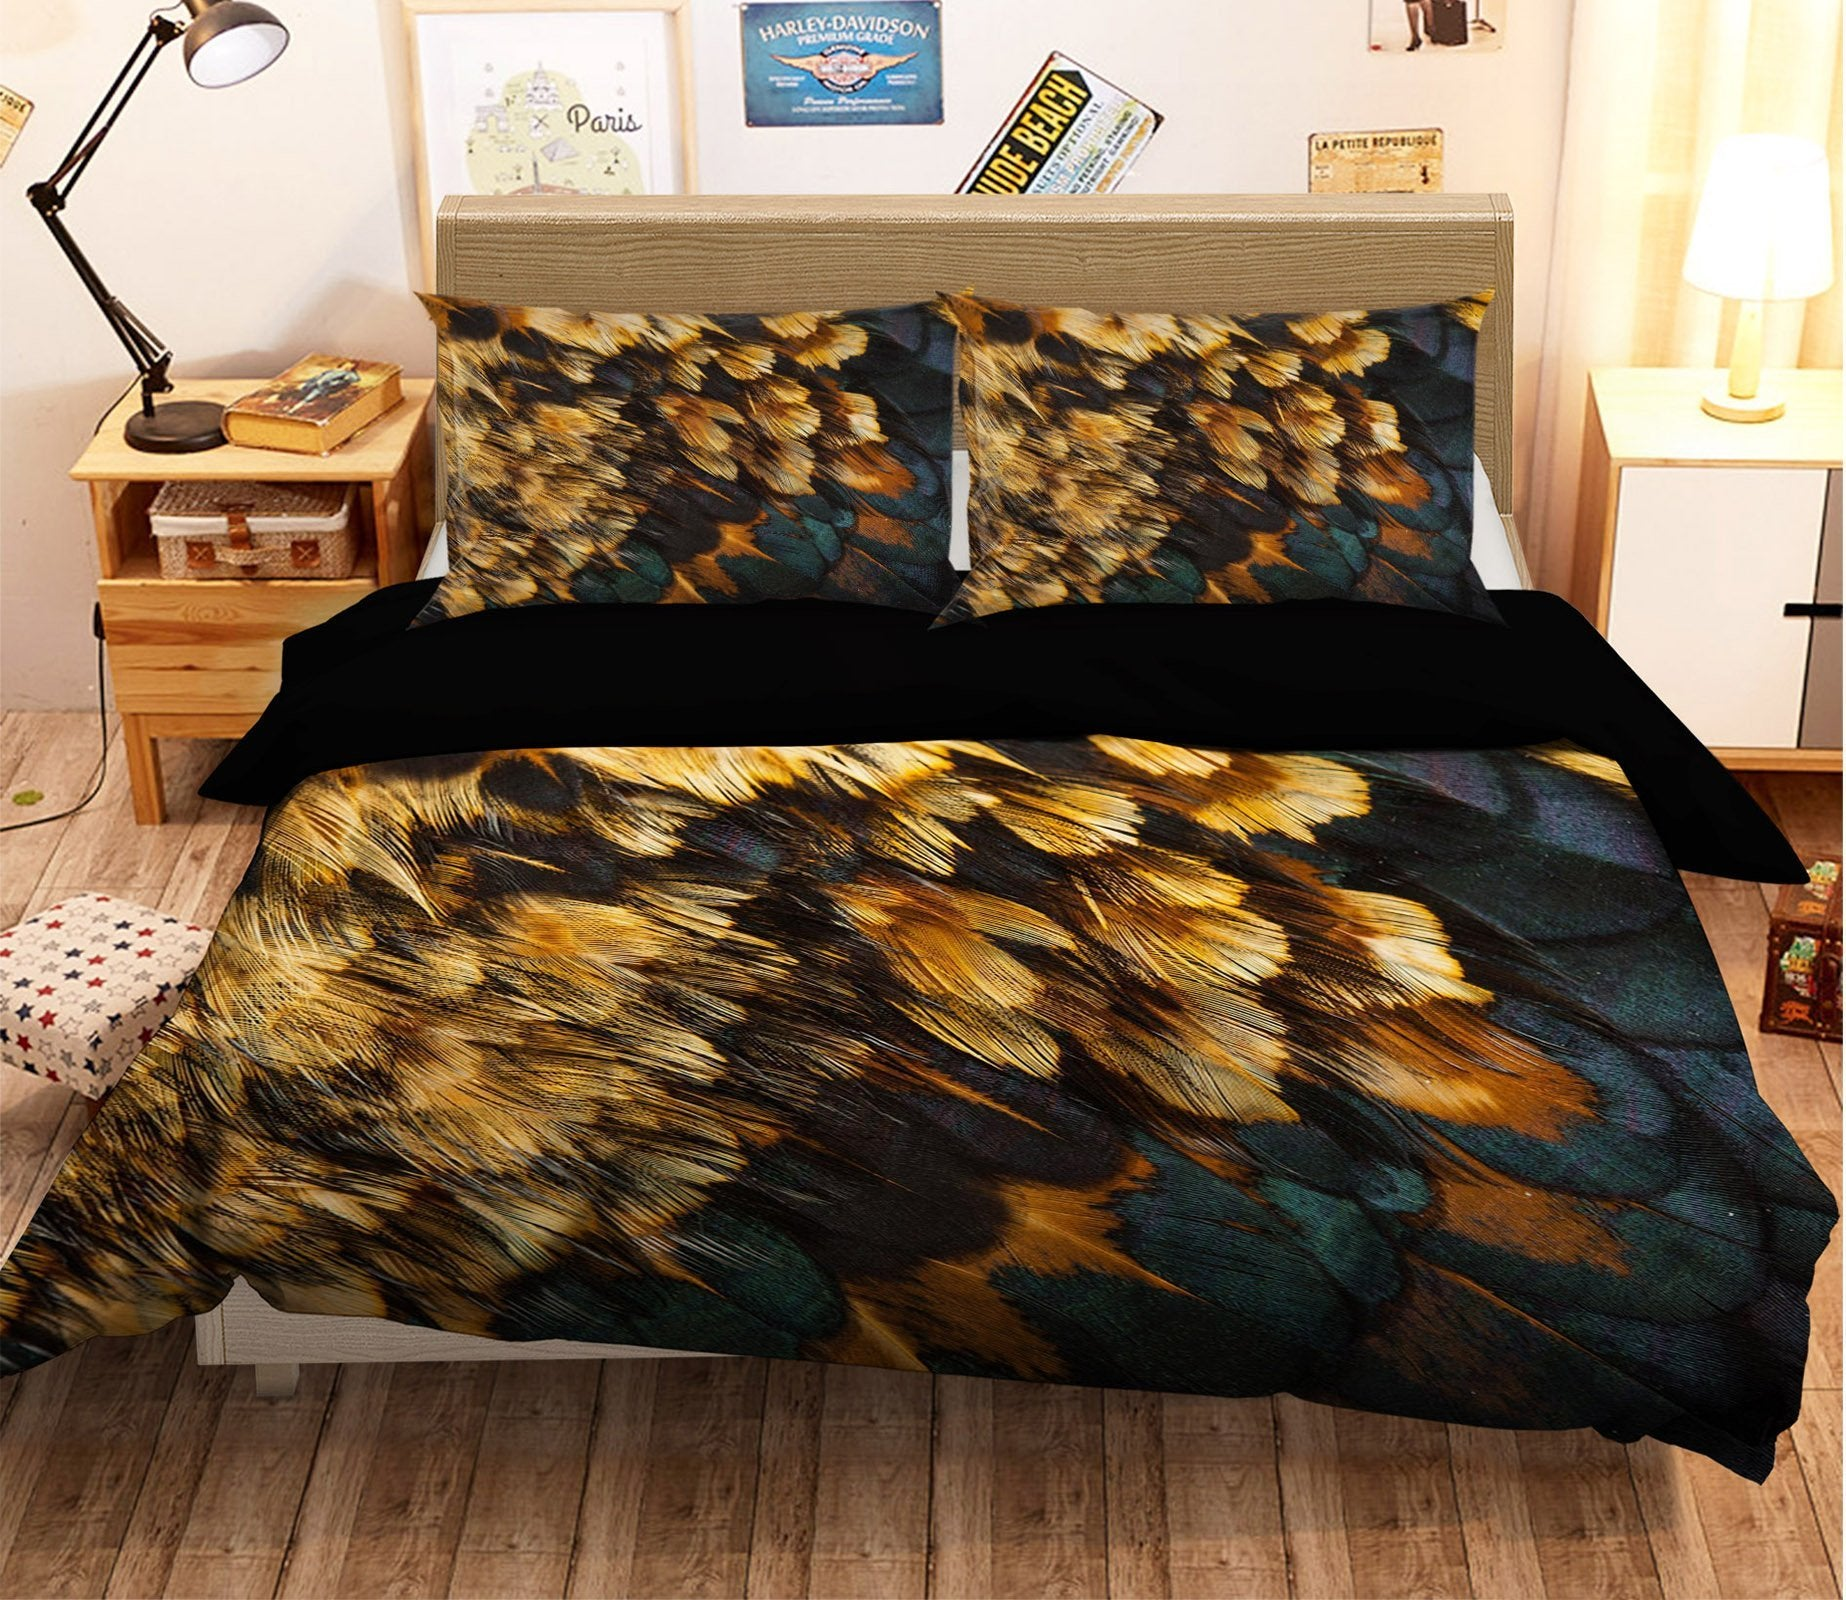 3D Graffiti Orange Feather 011 Bed Pillowcases Quilt Wallpaper AJ Wallpaper